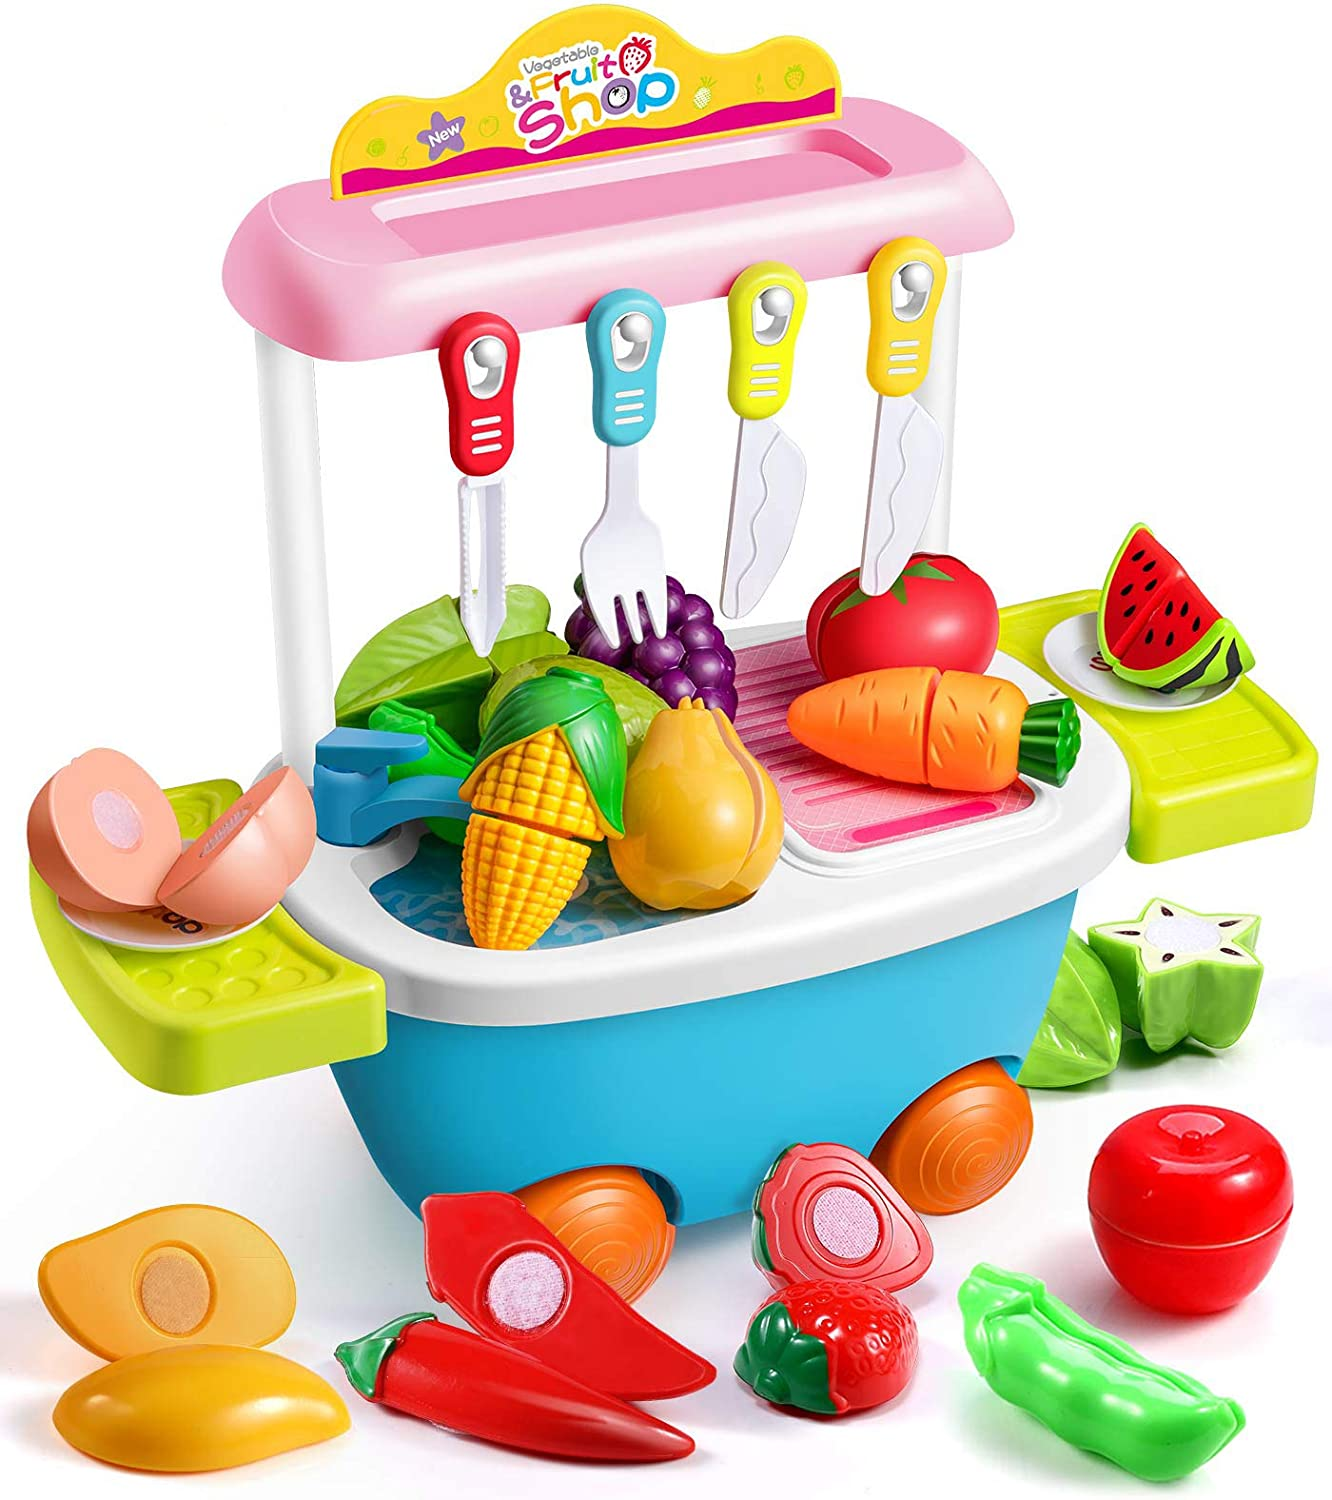 Geyiie Play Food for Kids Kitchen Toys –30PCS Pretend Food Cutting Fruits Vegetable Playset Shopping Cart Trolley Food Truck – Pretend Play Educational Toy for Toddlers 3 4 5 6 7 8 Years Old